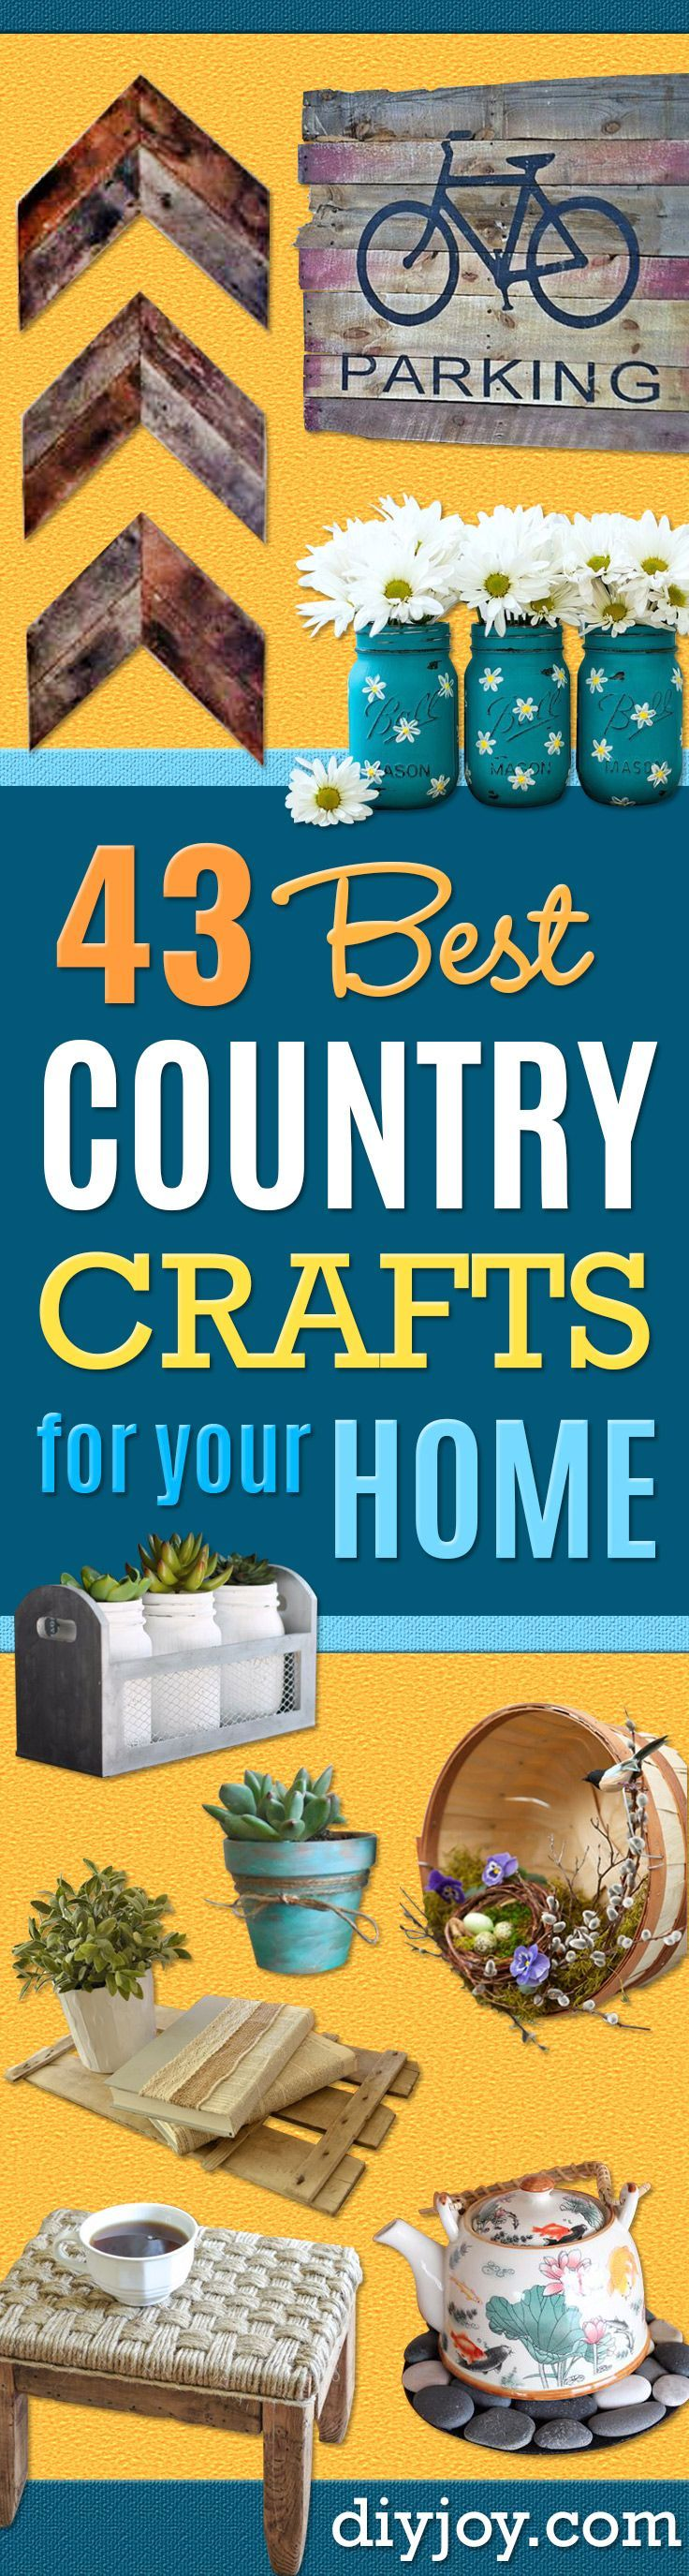 295 best DIY Kitchen Decor images on Pinterest | Decorating tips ...